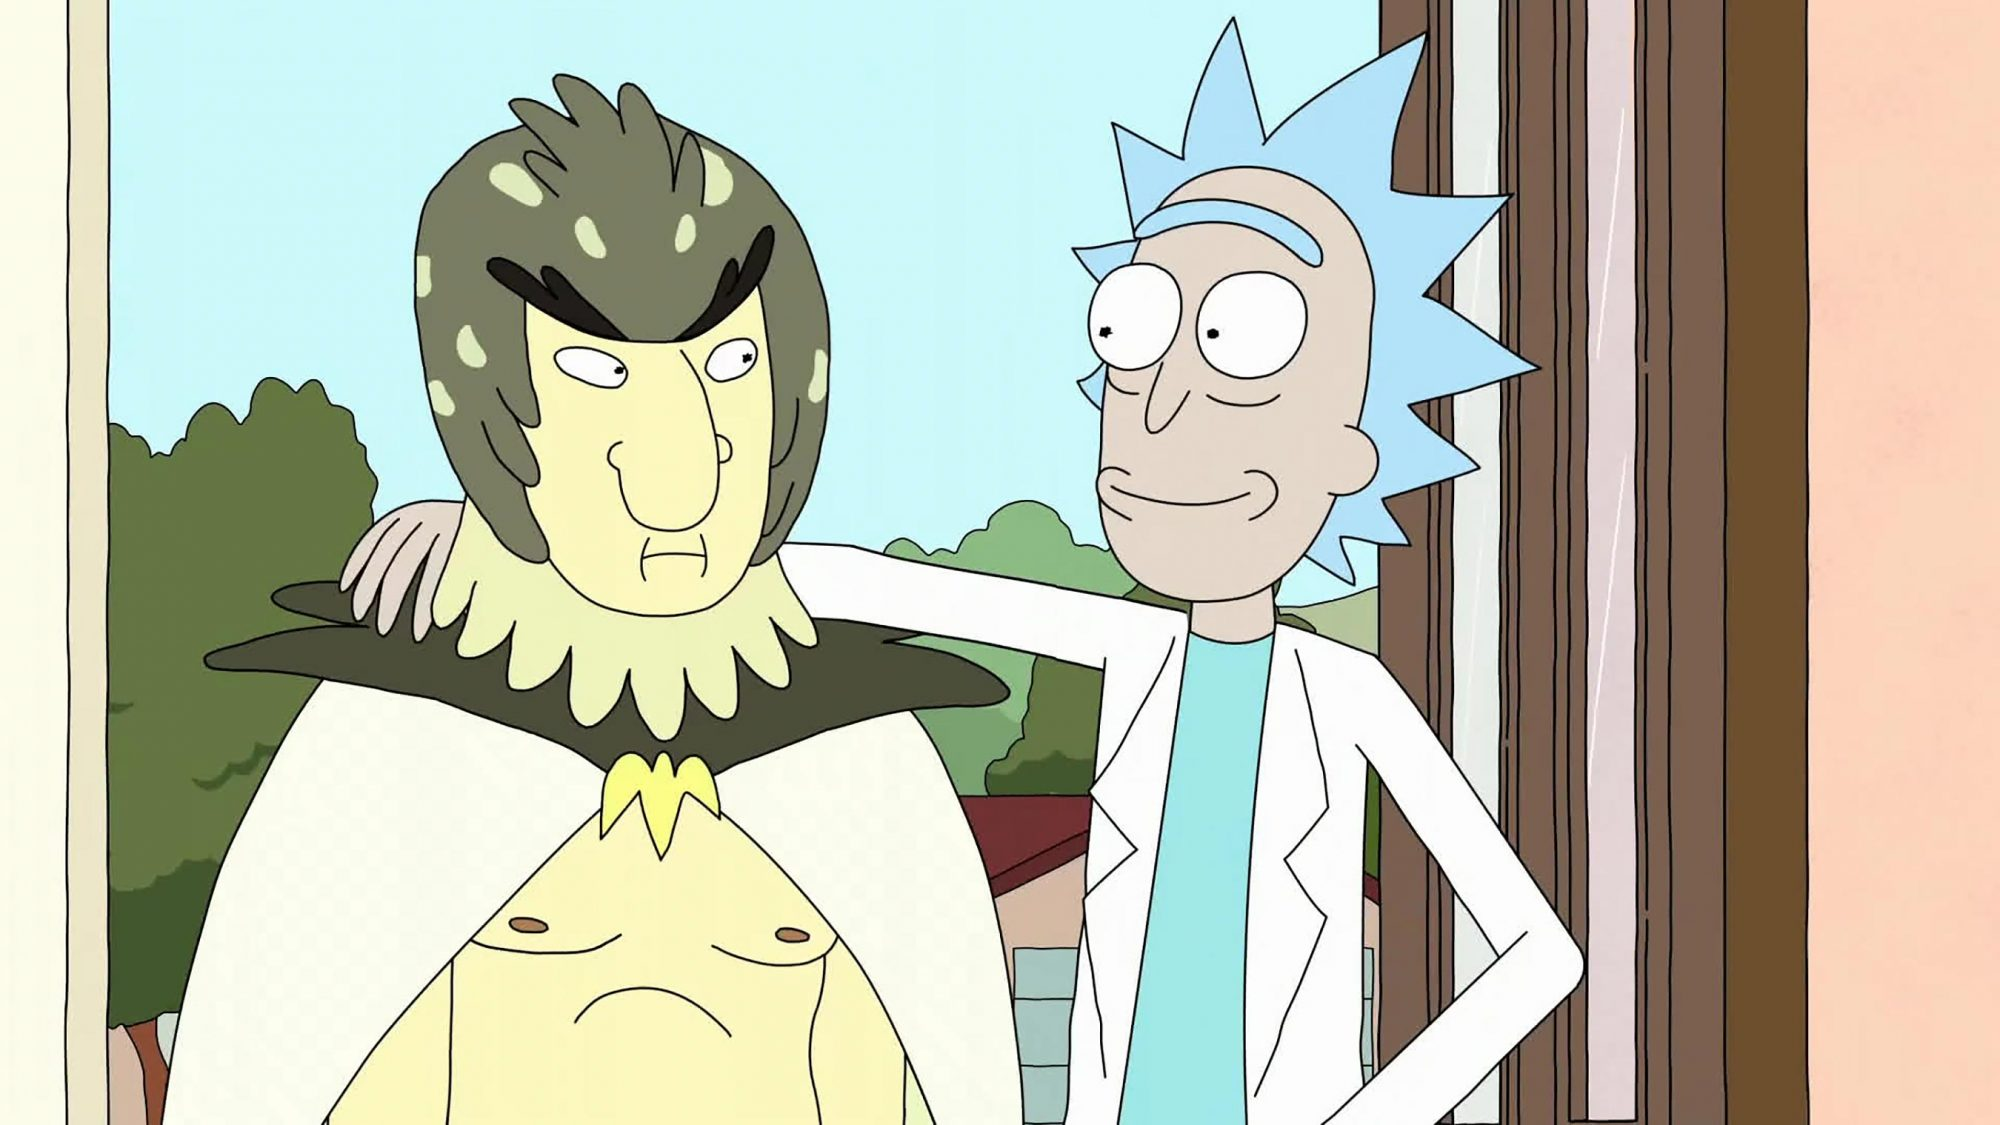 Ricky and Morty - Bird Person (Season 1, Episode 11; Season 2, Episode 10)